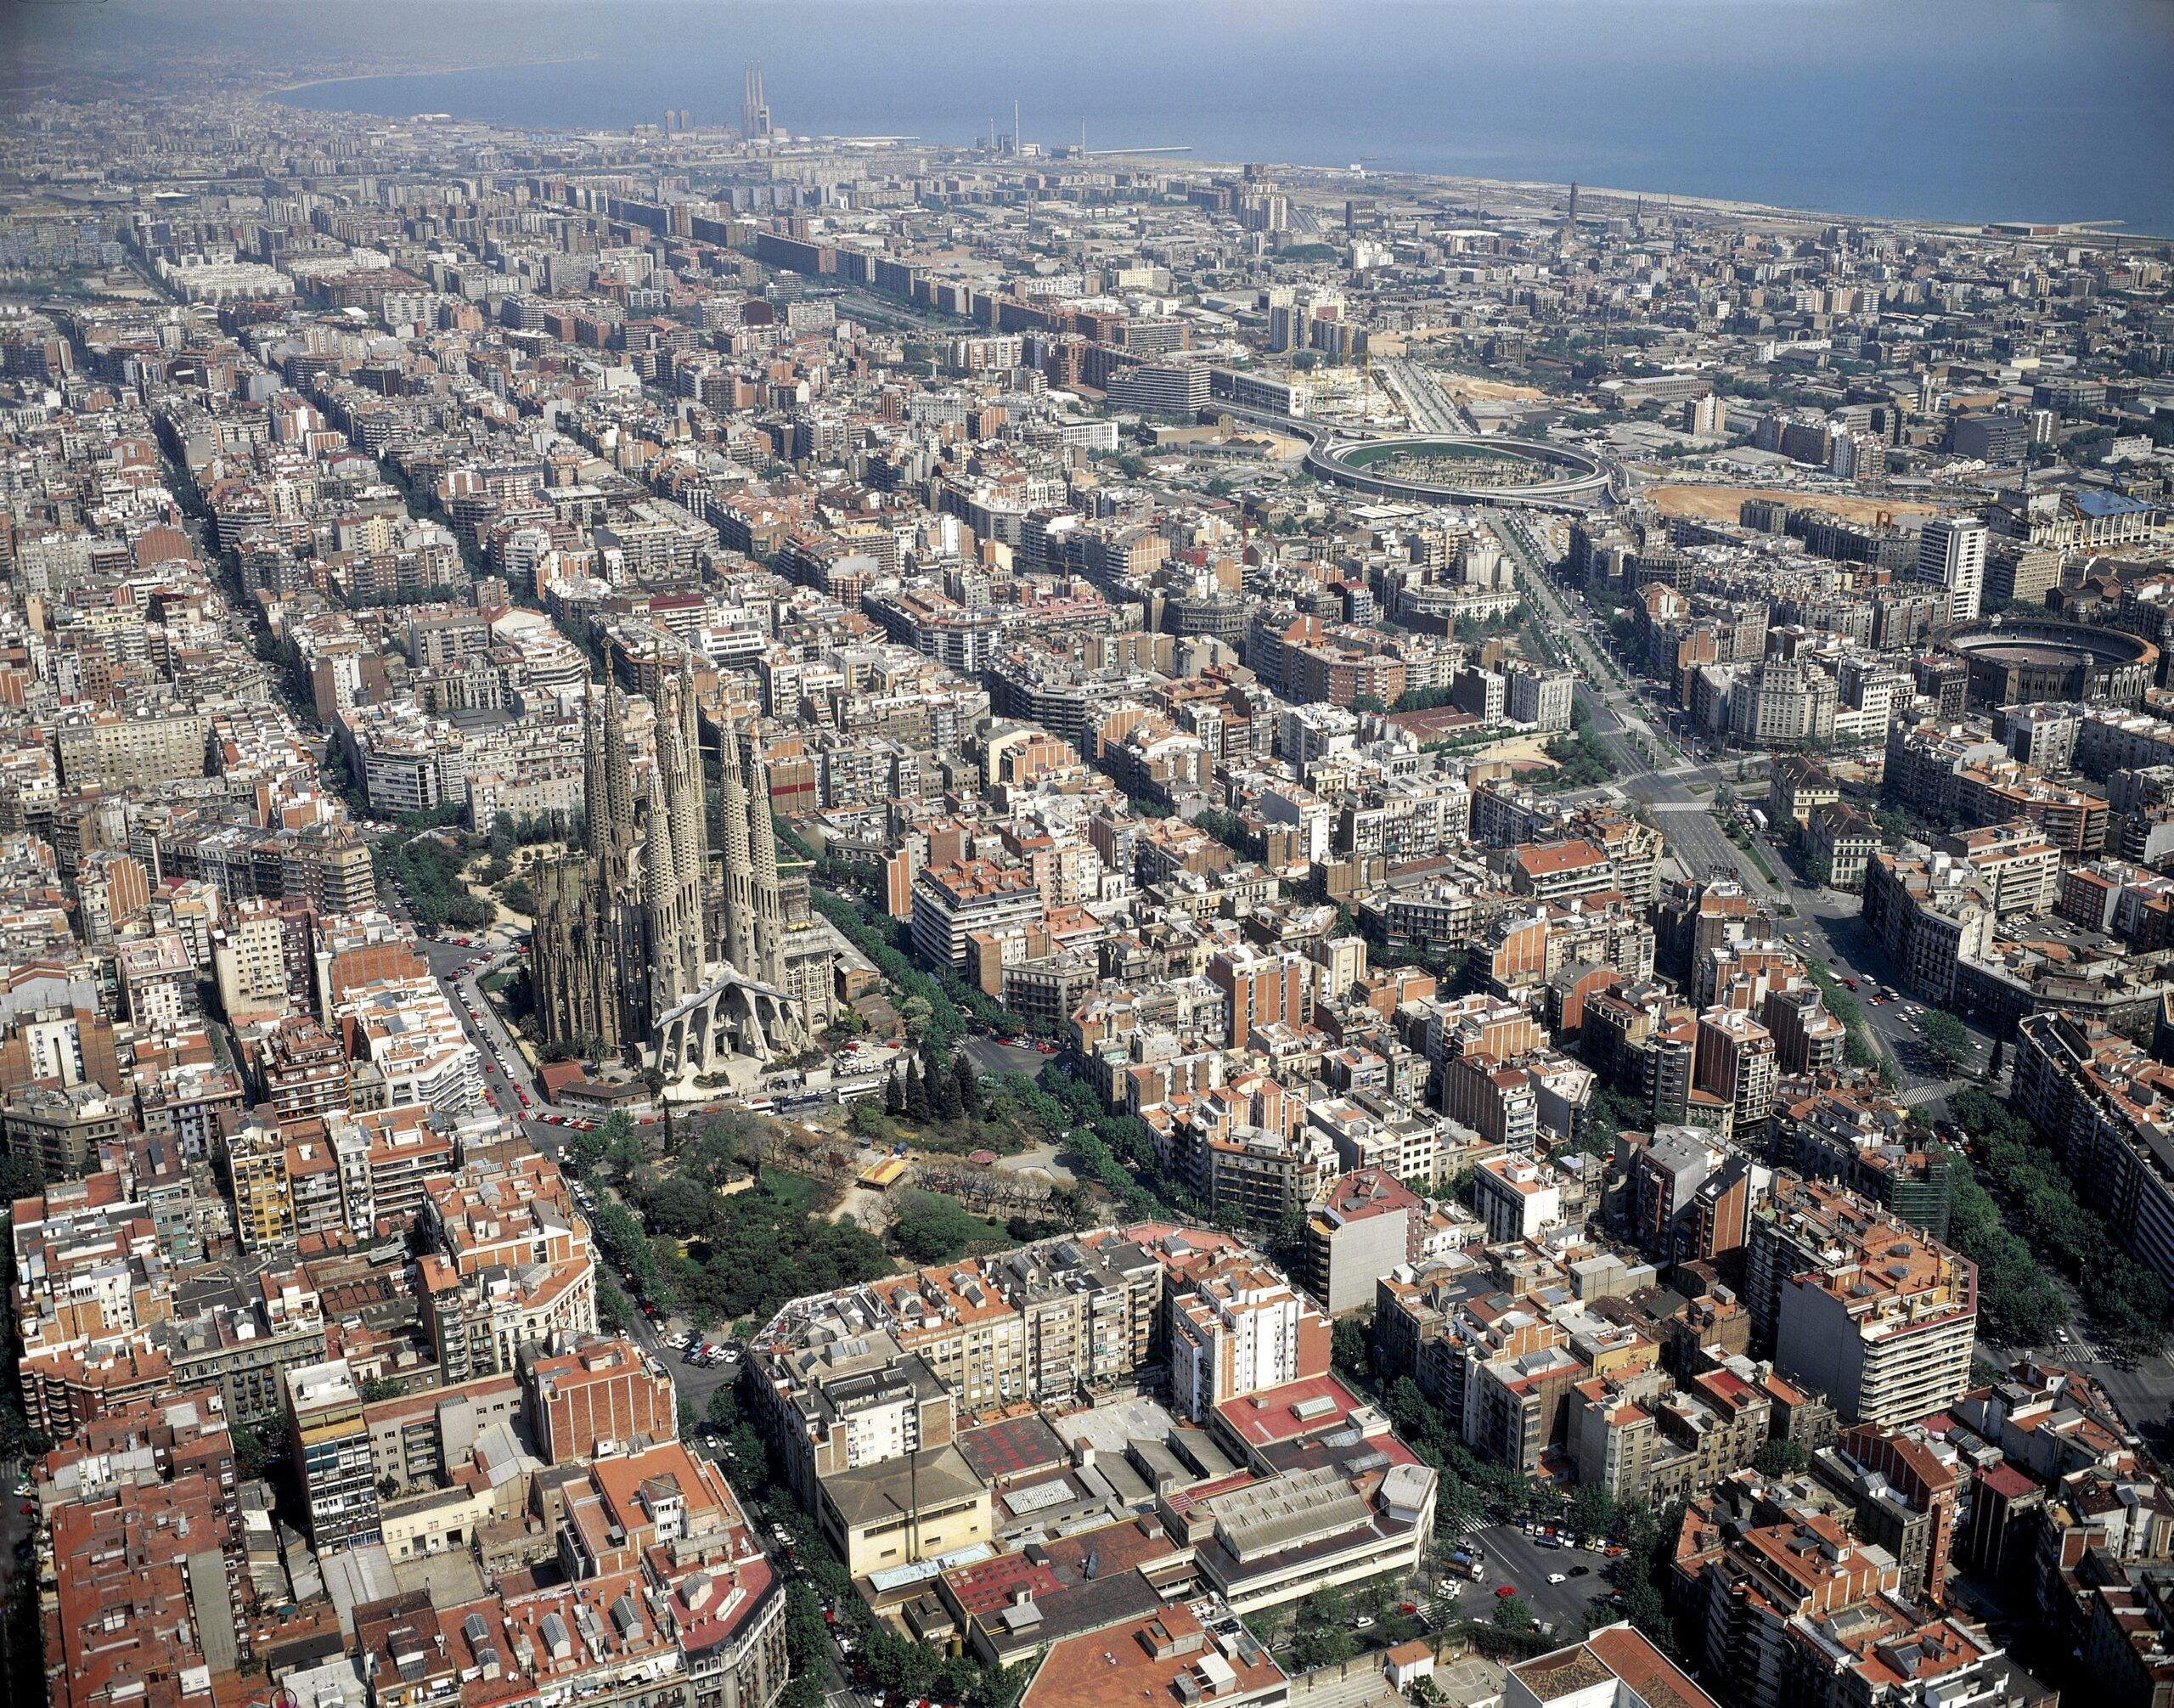 Aerial view of Barcelona from the Eixample district to the sea in the distance, with the Sagrada Familia church in the middle